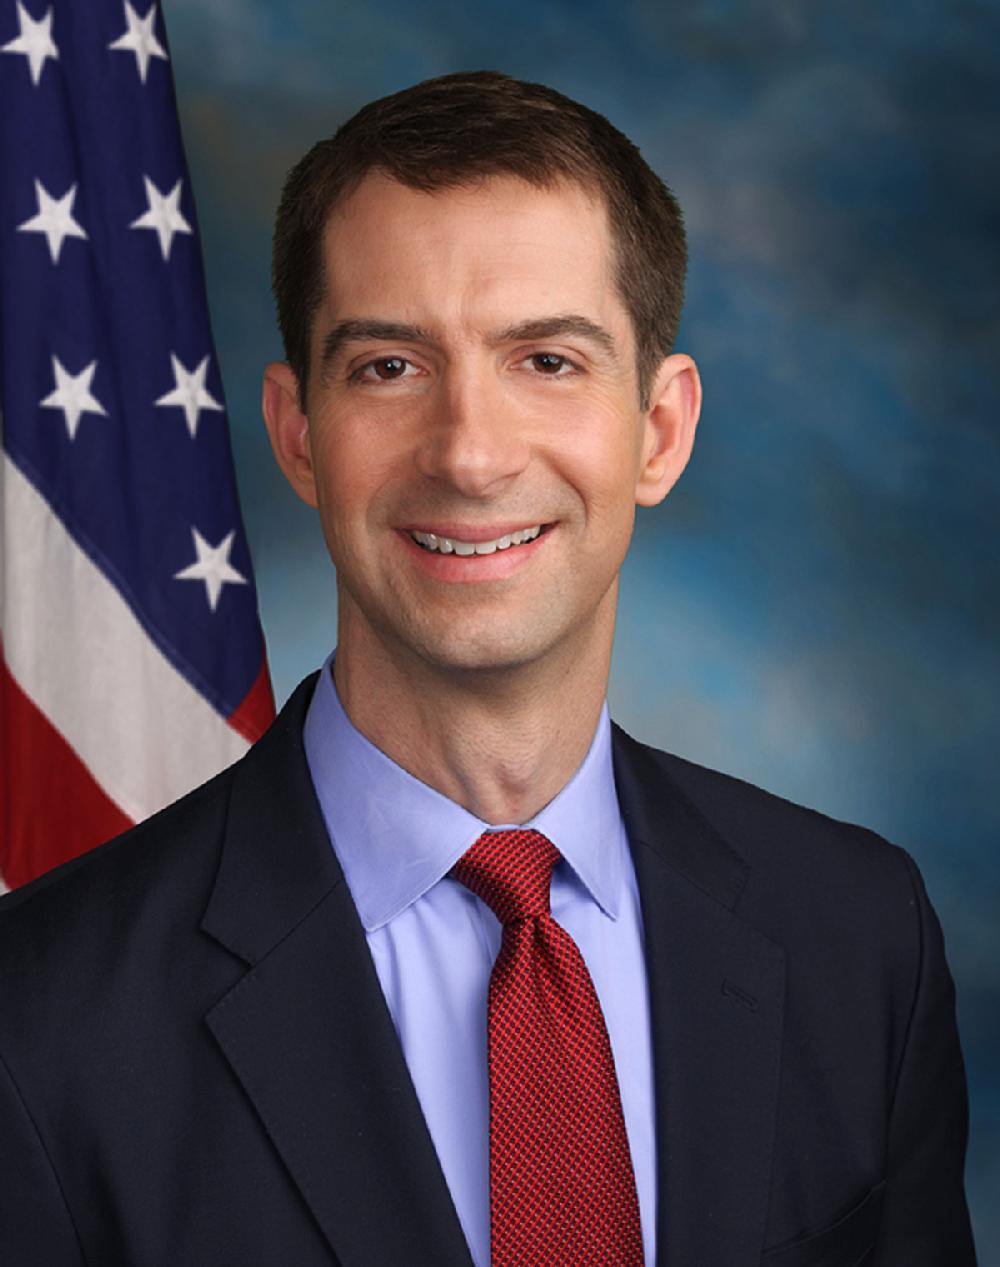 US To Revoke China's Permanent Most Favored Nation Status: Tom Cotton